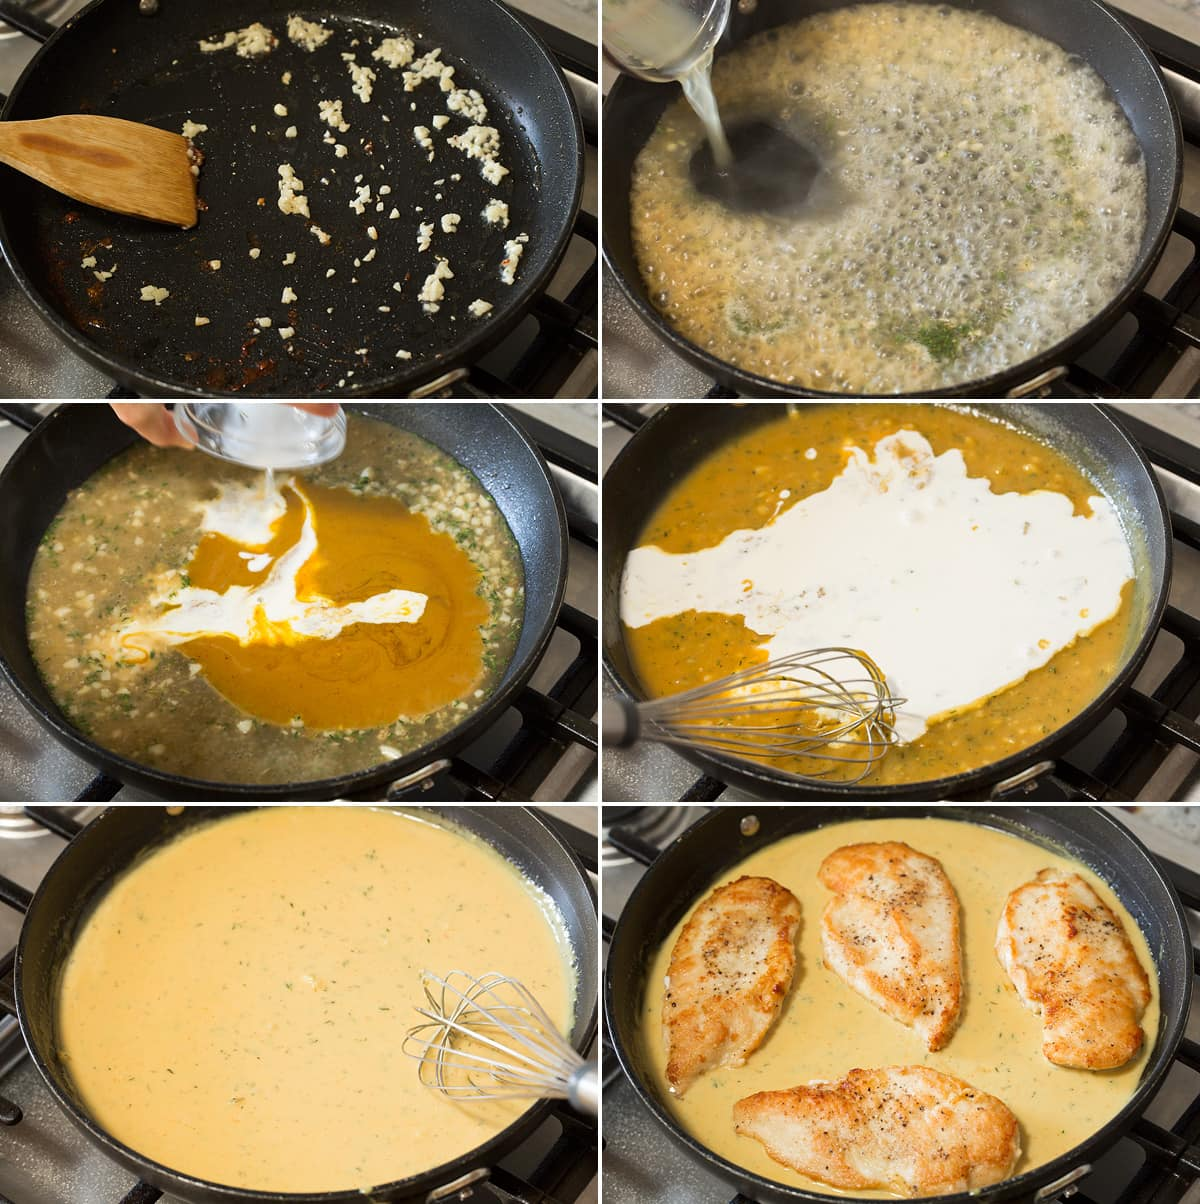 Six photos showing steps of making honey mustard pan sauce and adding cooked chicken.